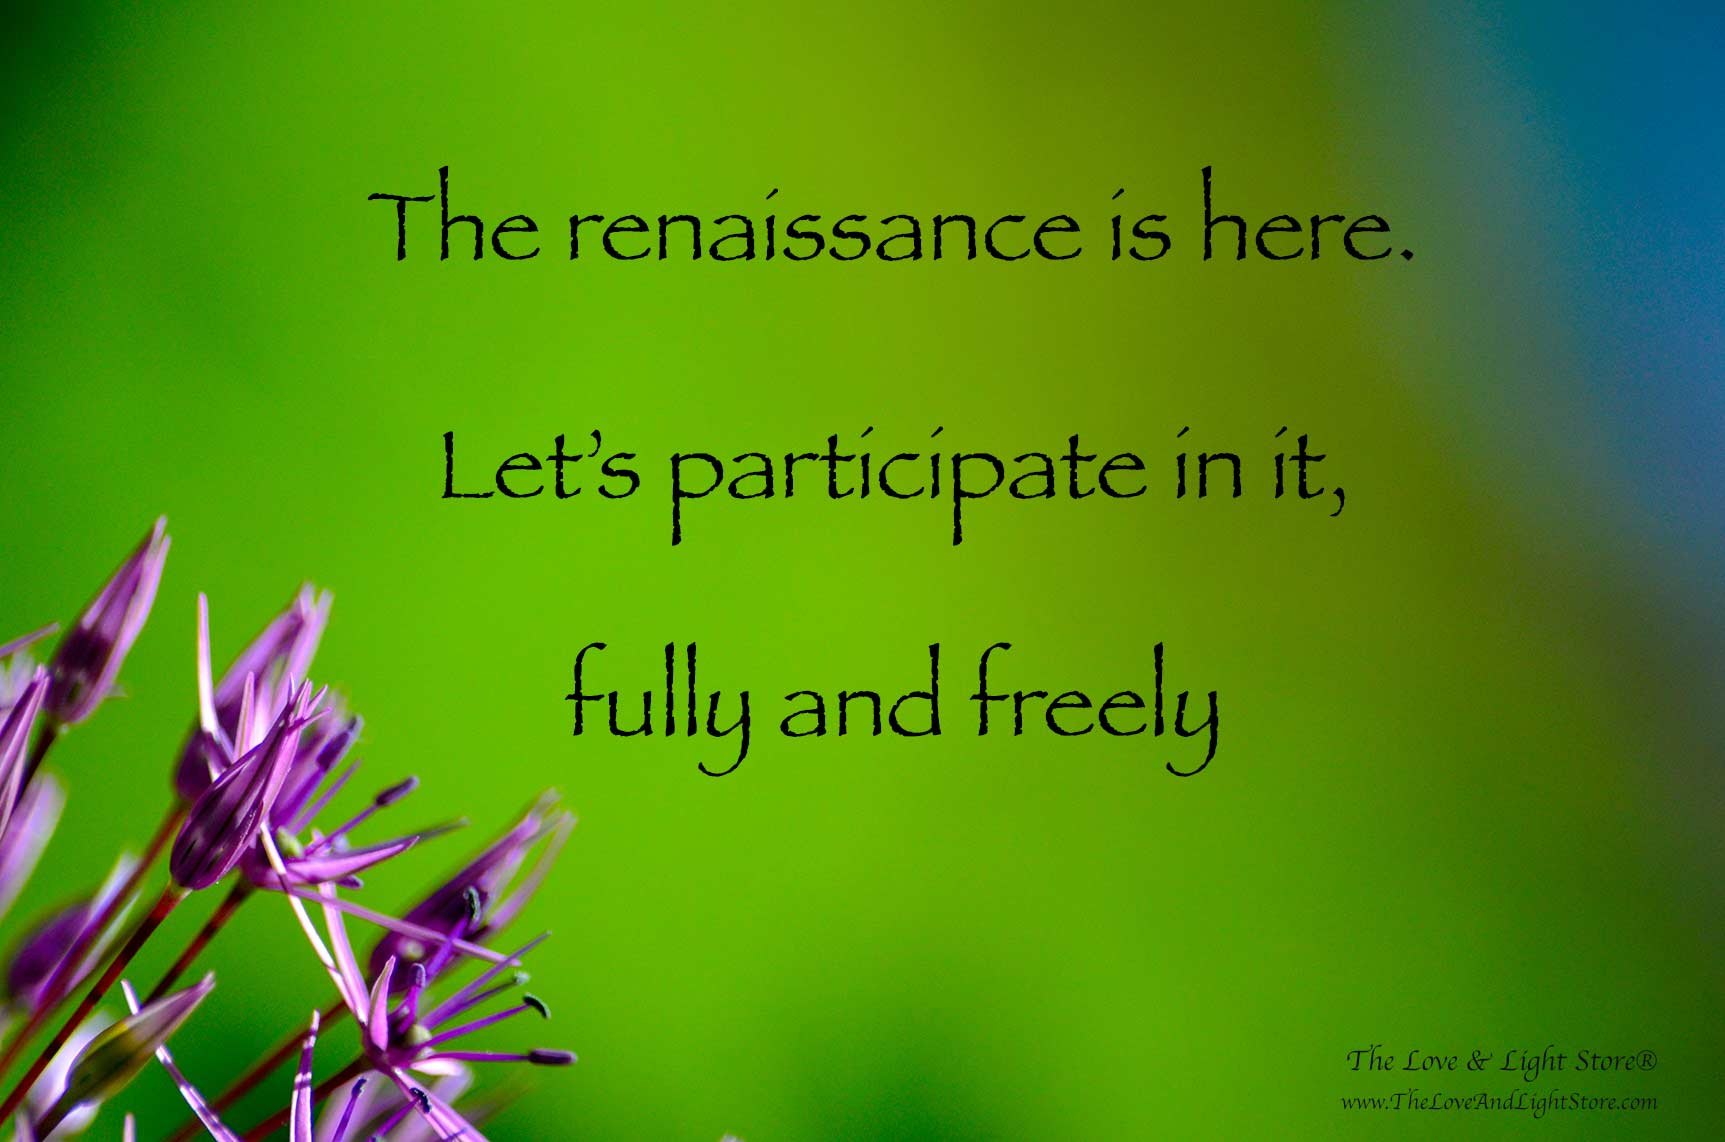 The spiritual renaissance is here. The old is dying and a new world is emerging. As awakening beings we need to be the forerunners of it all.